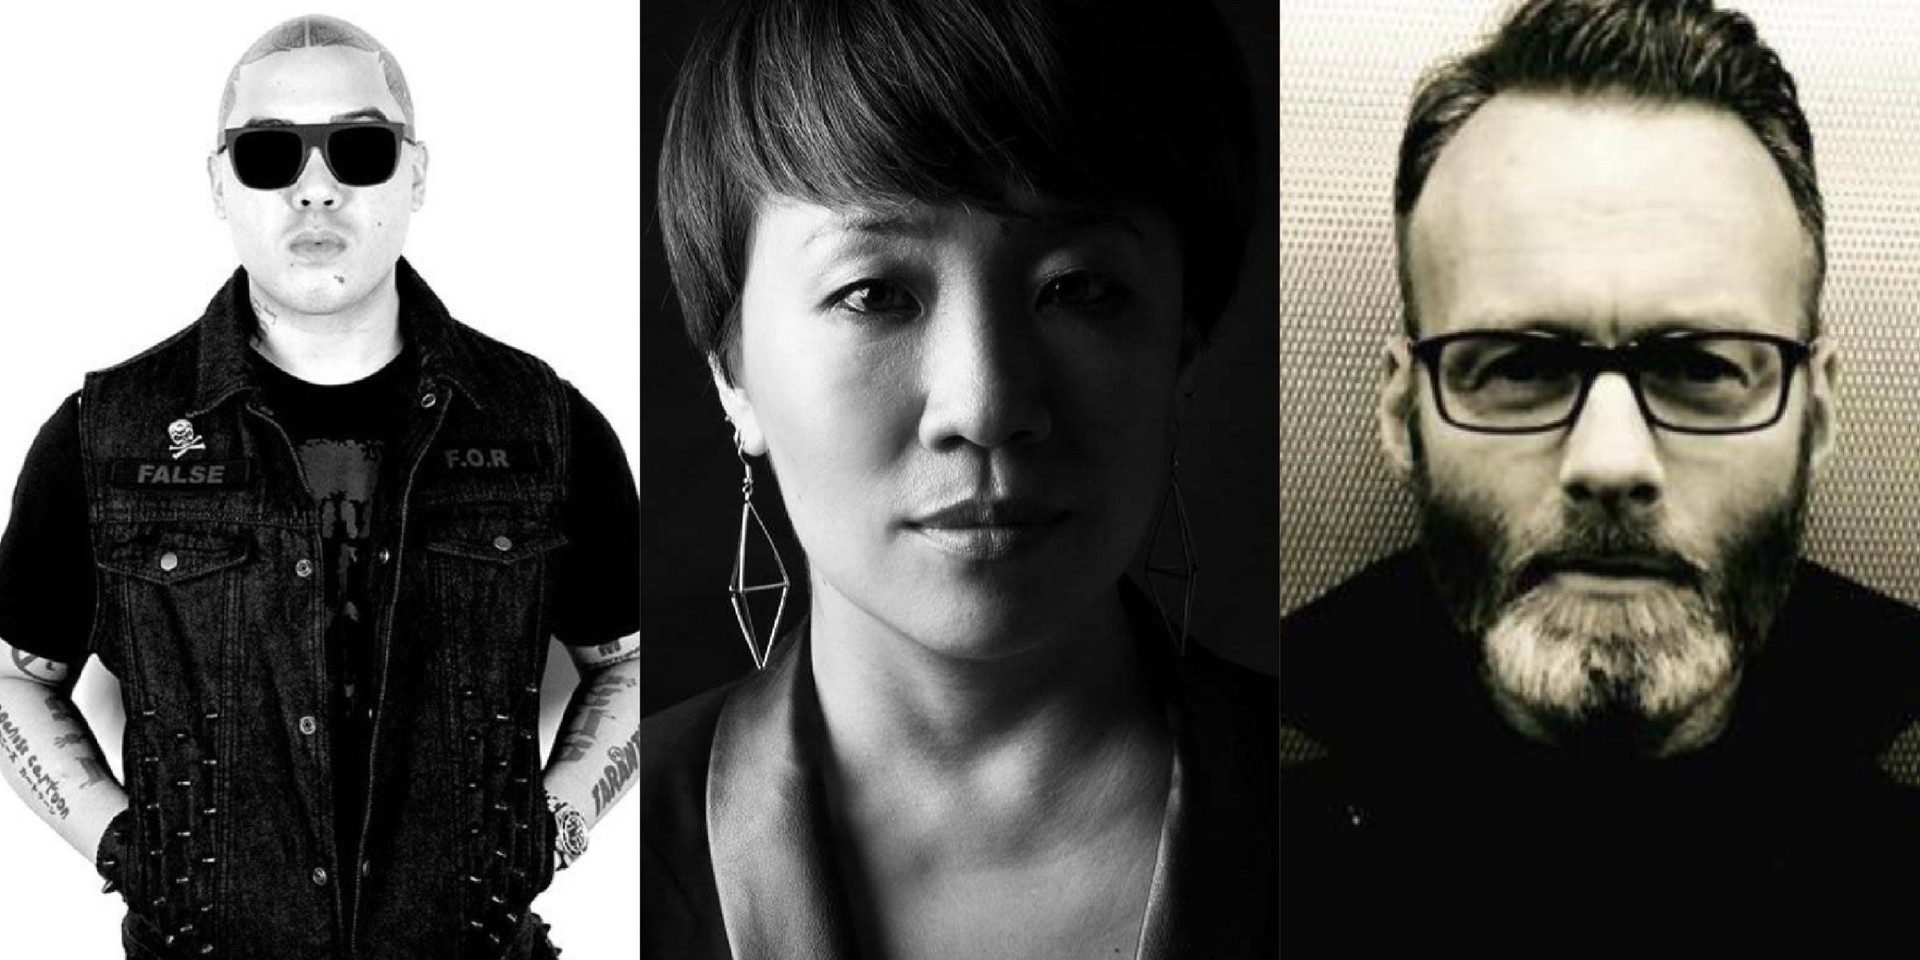 Aging Youth to hold music industry panels on touring and branding in March